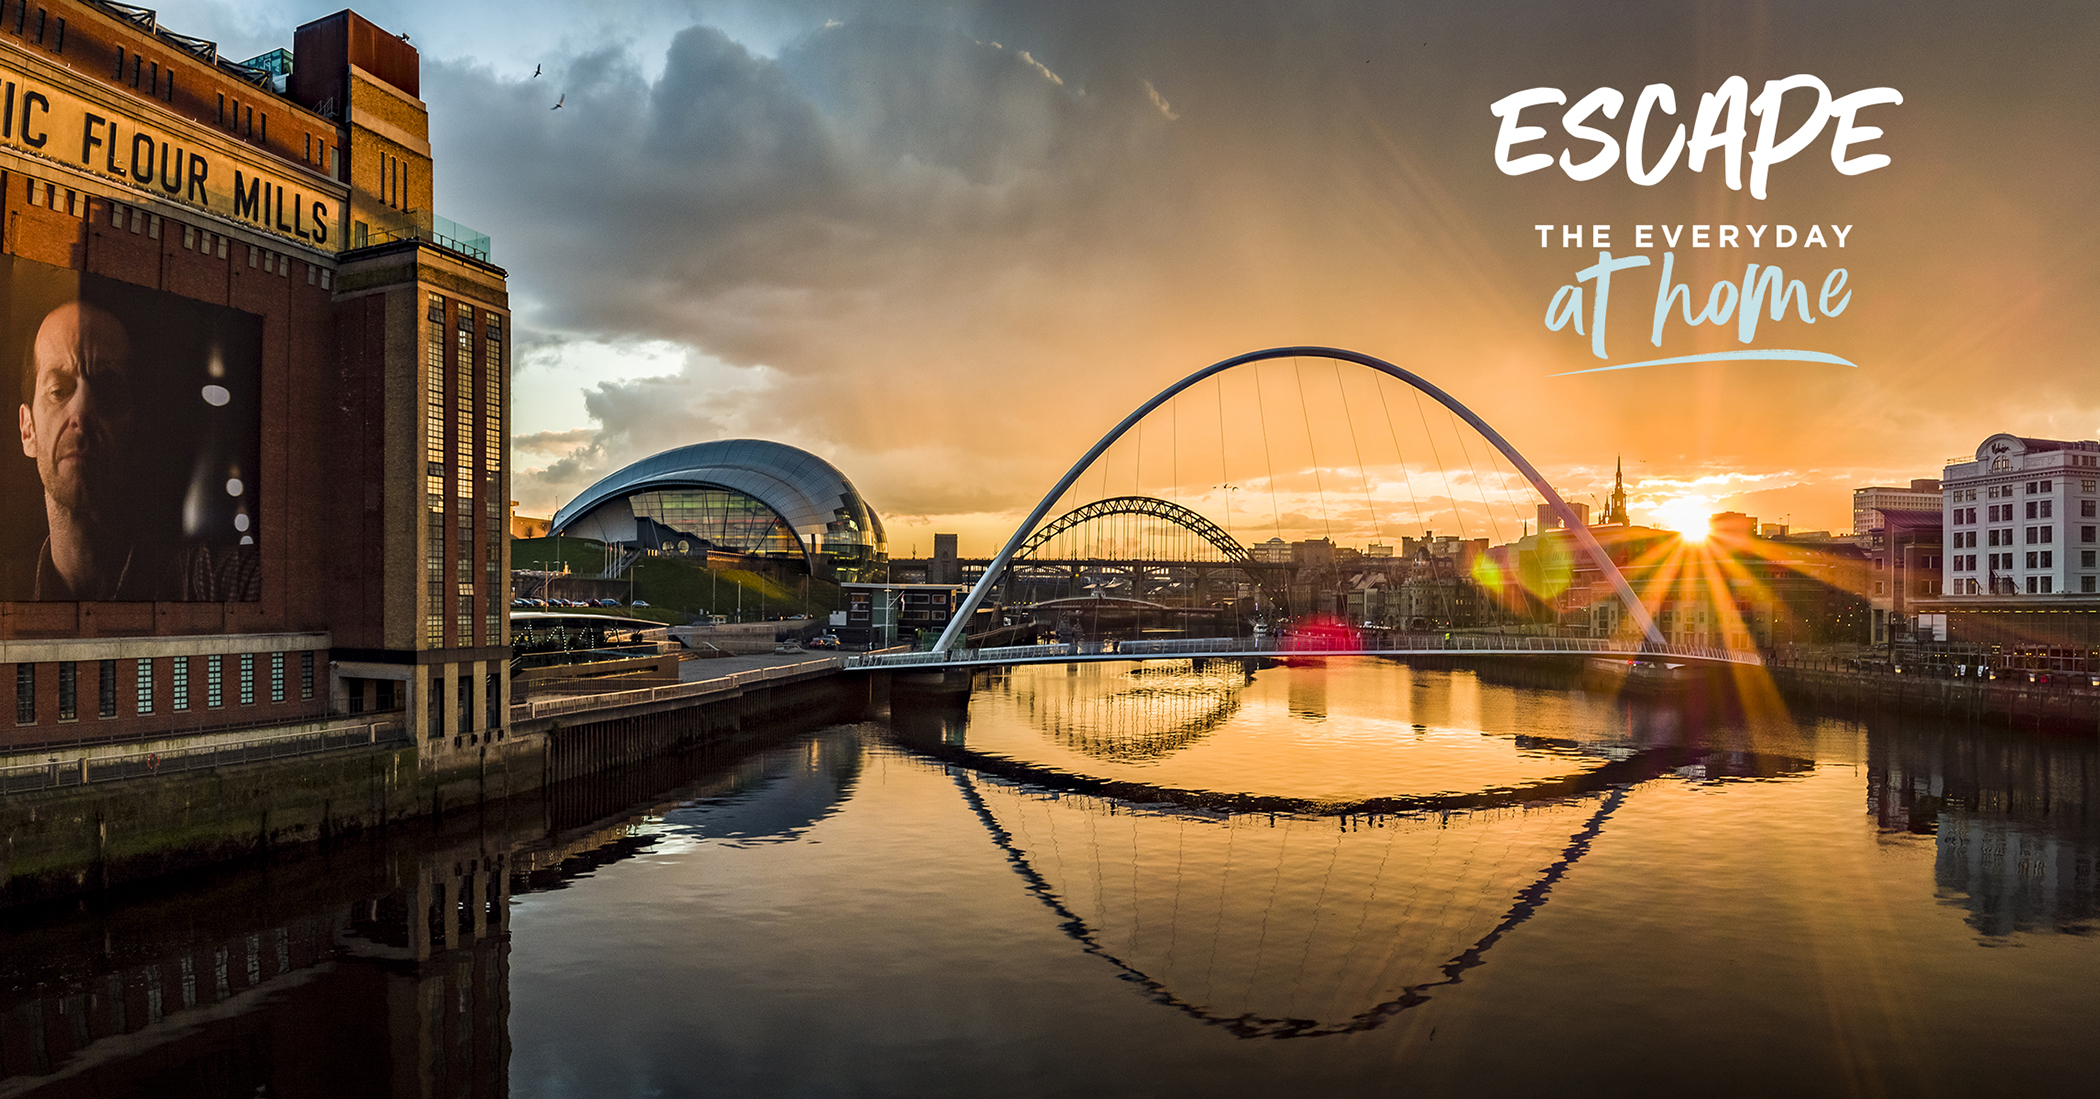 10 ways to Escape the Everyday (at home) in NewcastleGateshead and Northumberland